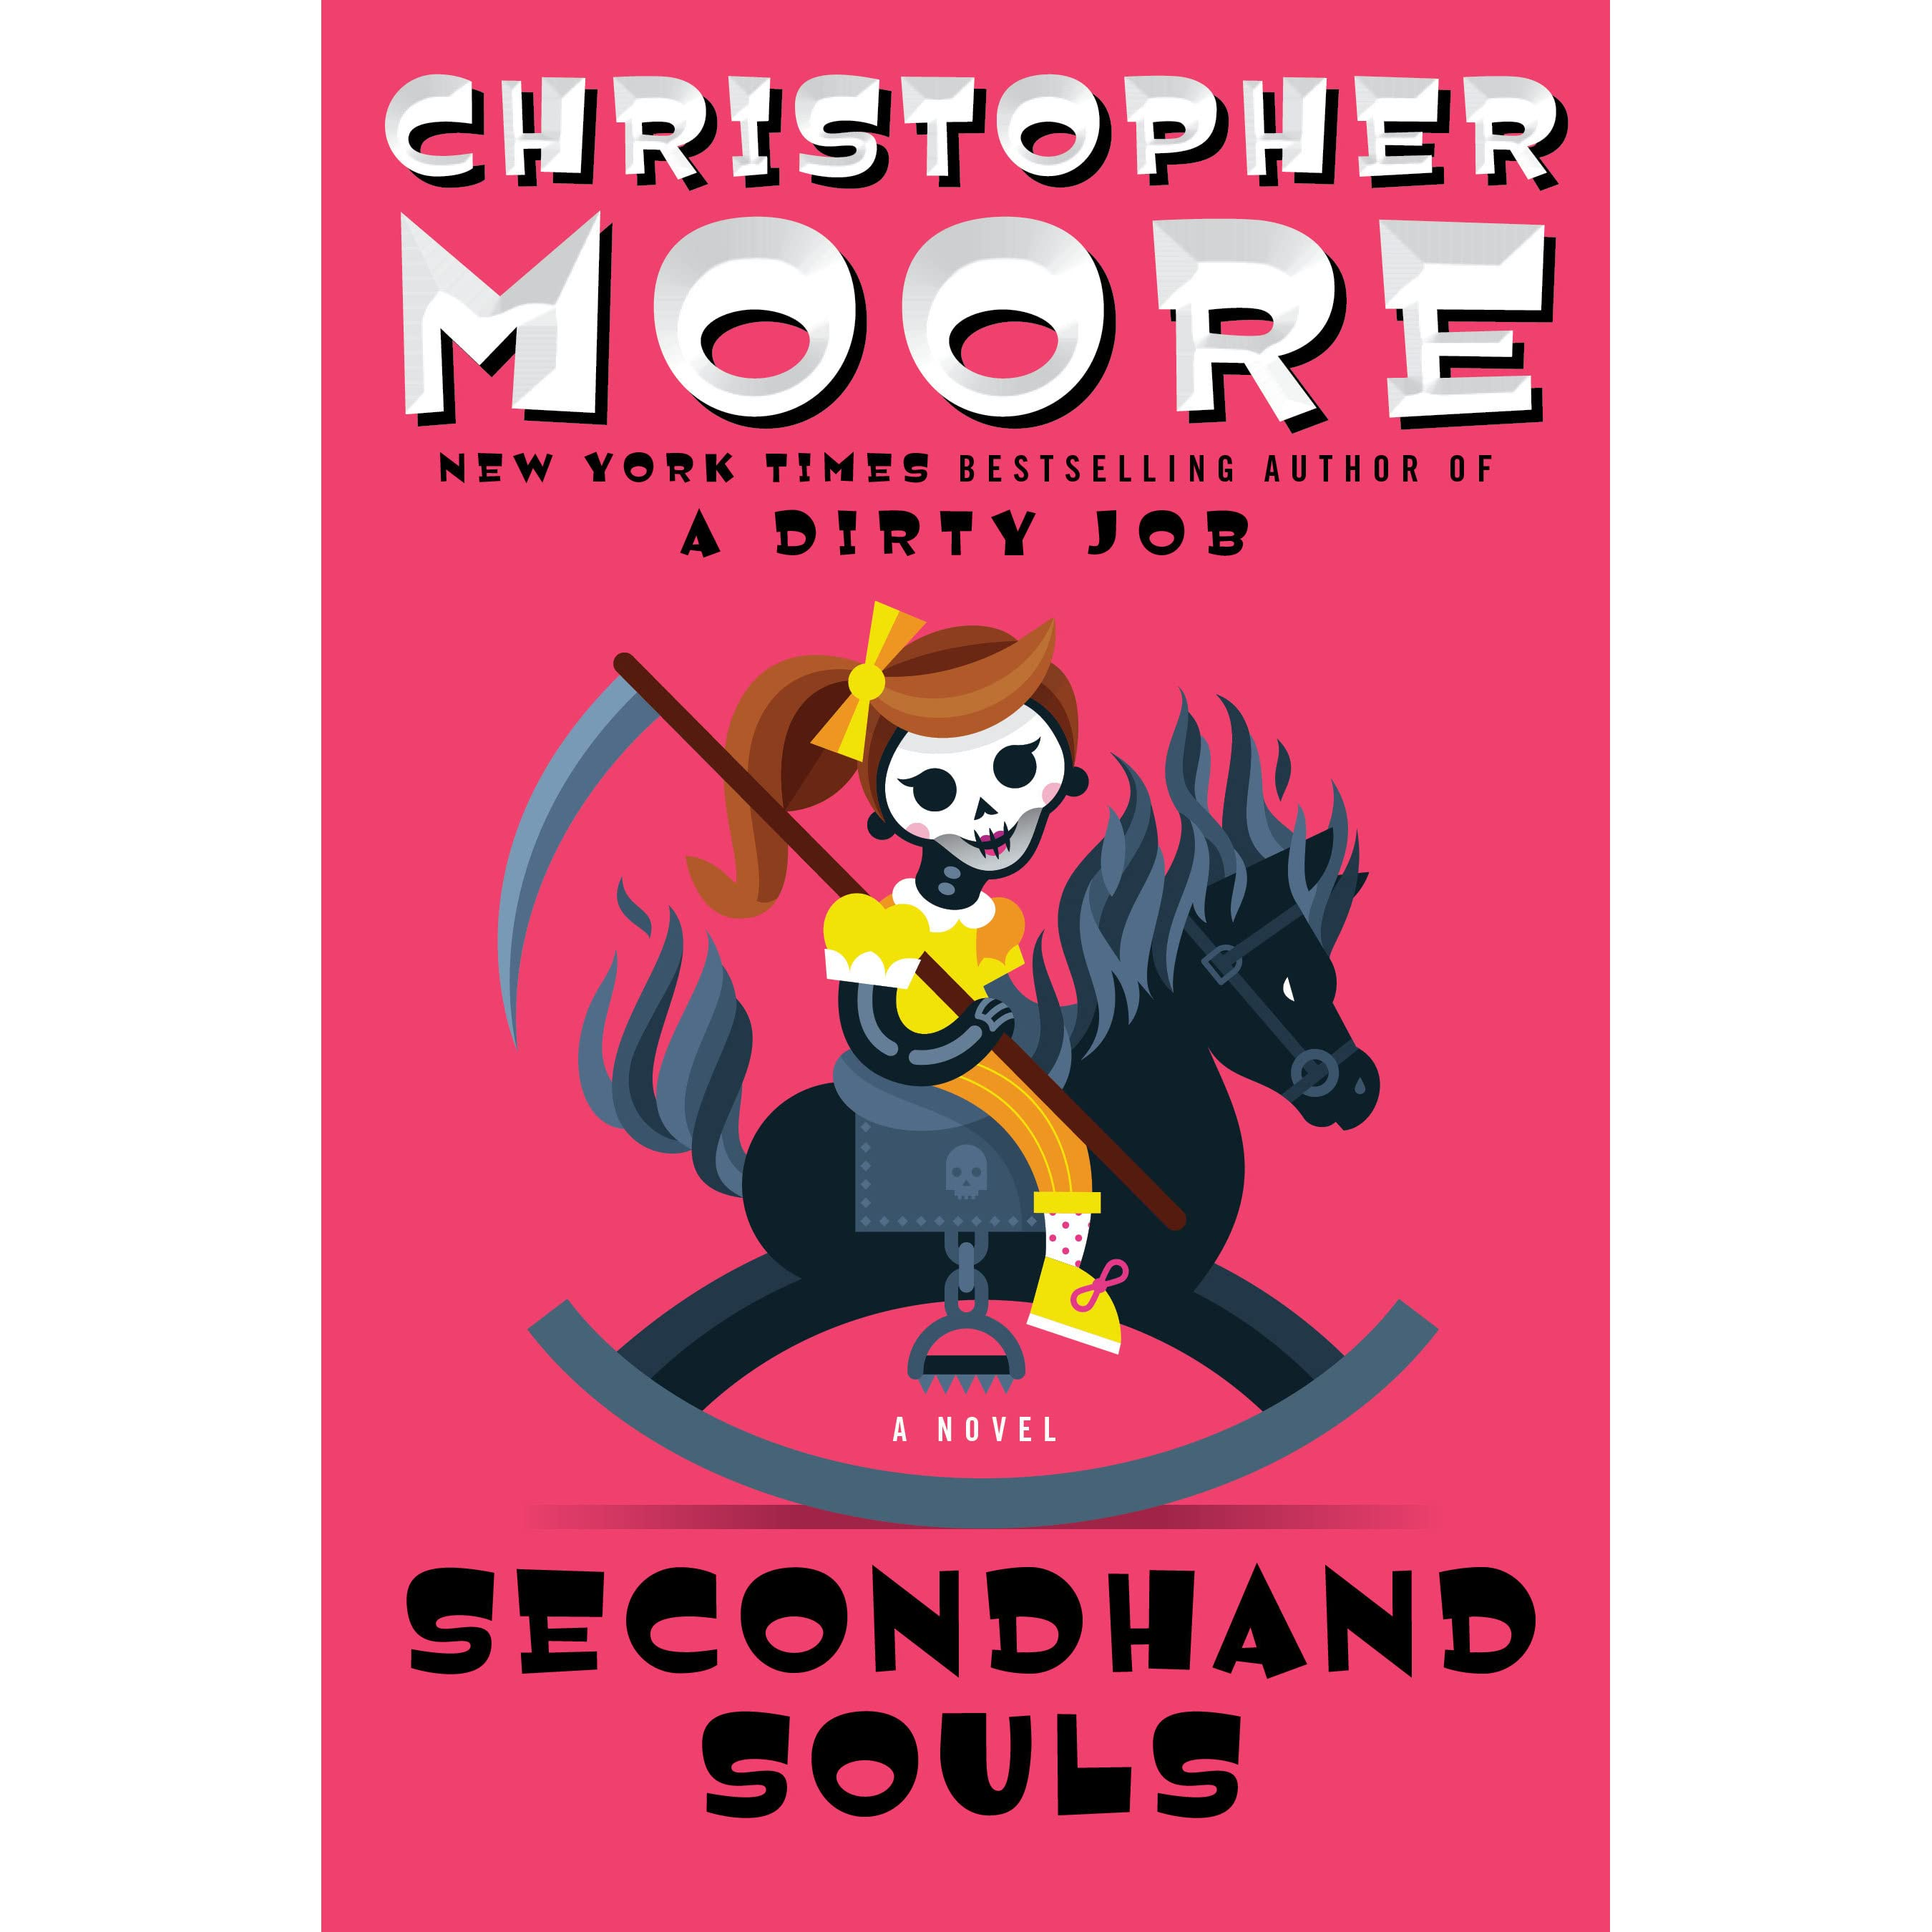 Secondhand Souls (Grim Reaper, #2) by Christopher Moore